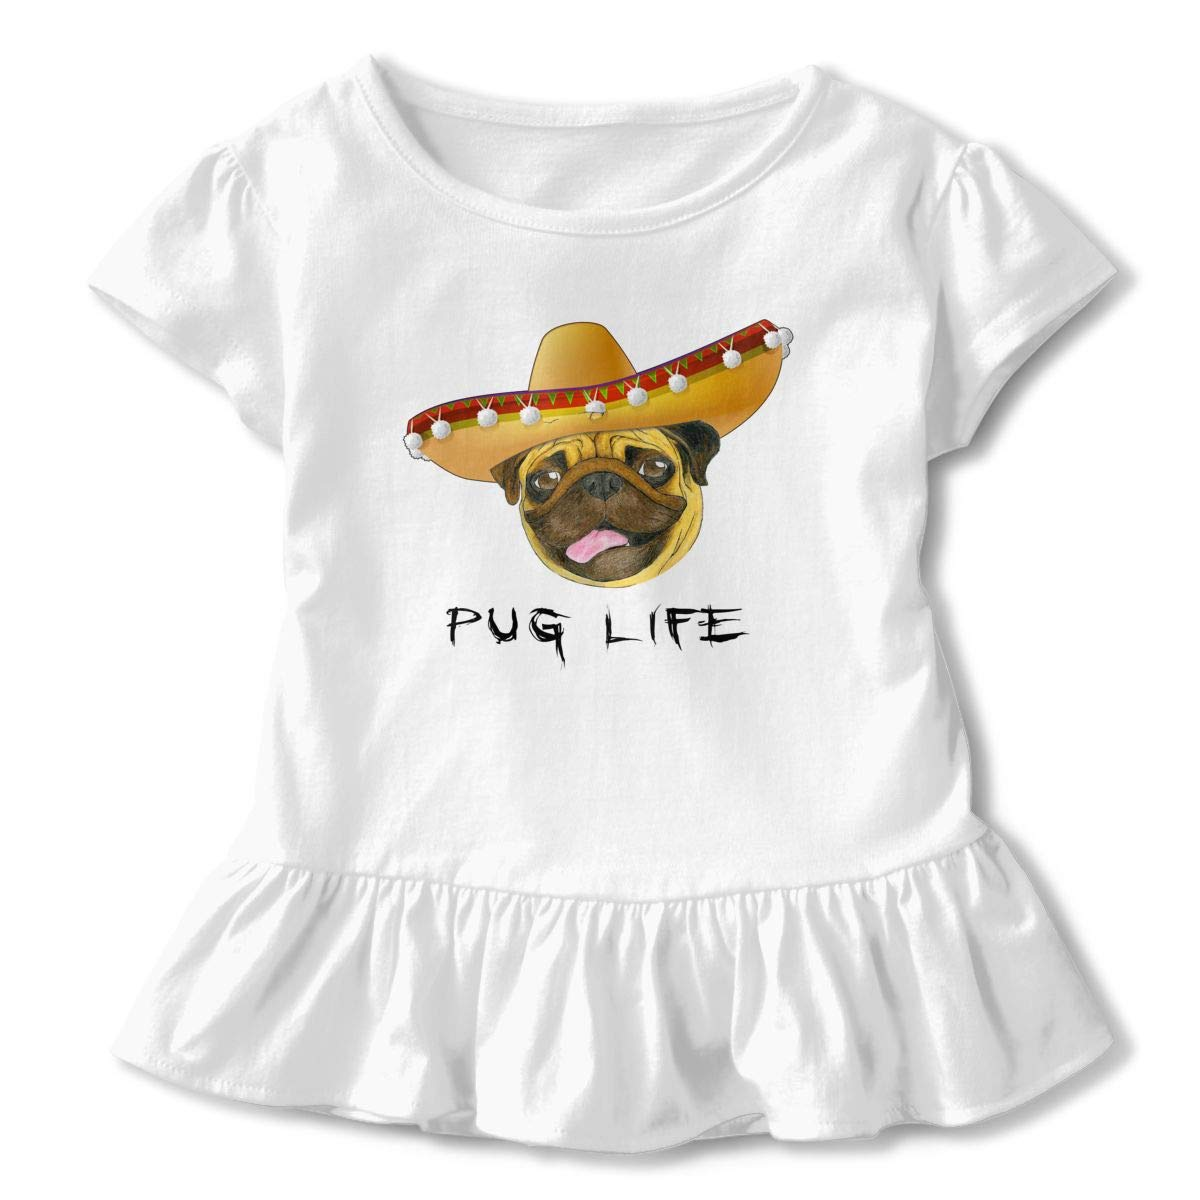 CZnuen Pug Life Mexico Hat Baby Girls Round Neck Short Sleeve Ruffle T-Shirt Top